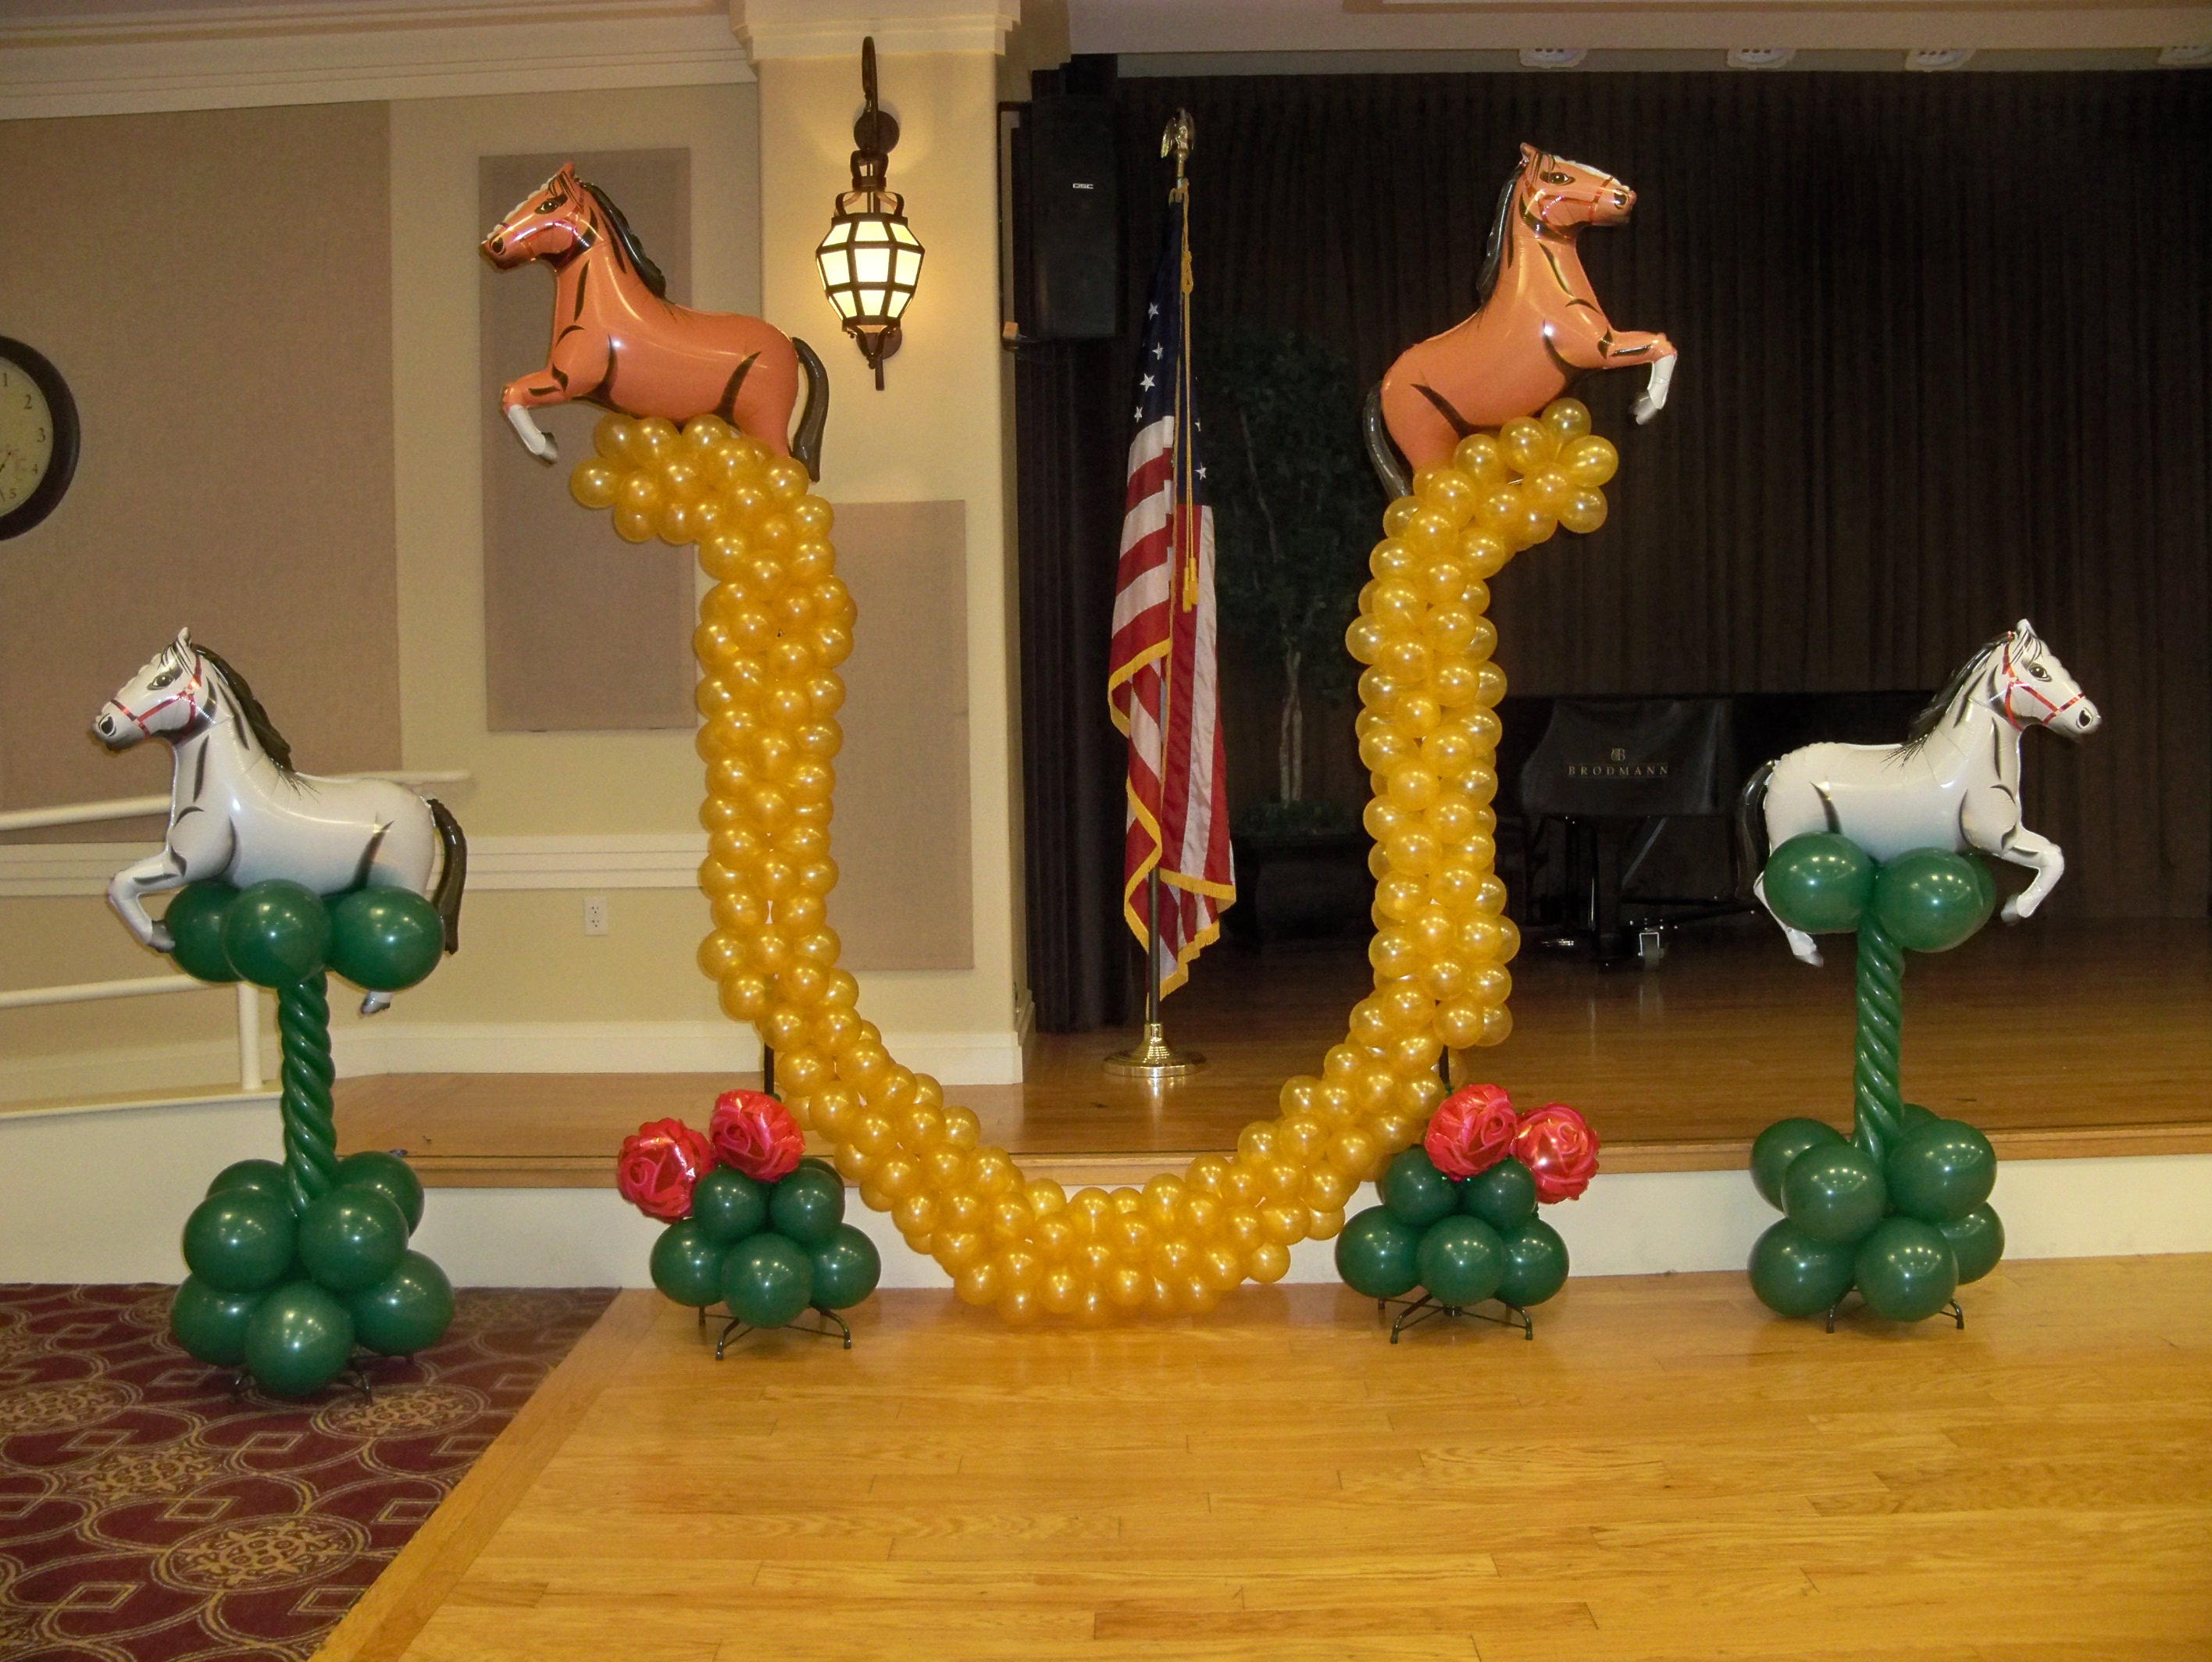 Shoehorse Balloon Decorations